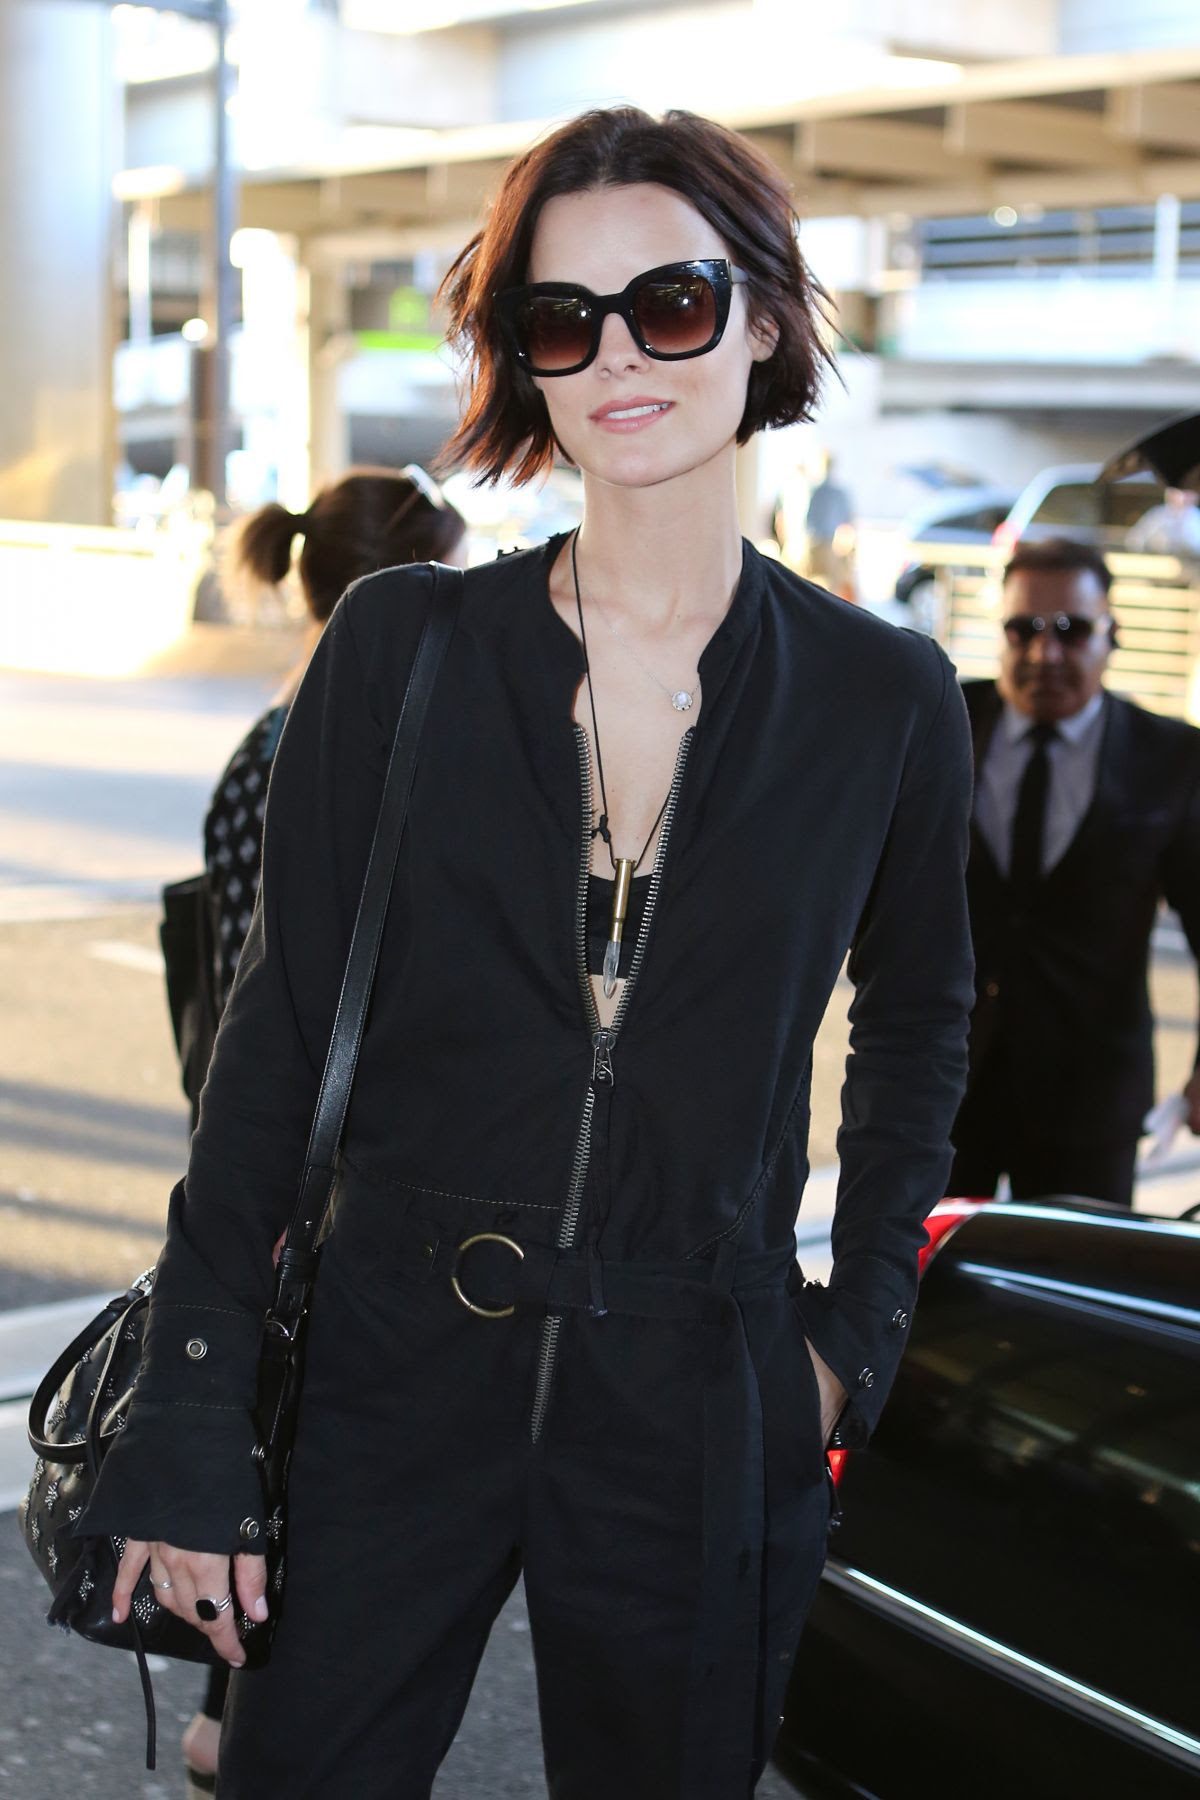 JAIMIE ALEXANDER at Pearson International Airport in Toronto 06/03/2015